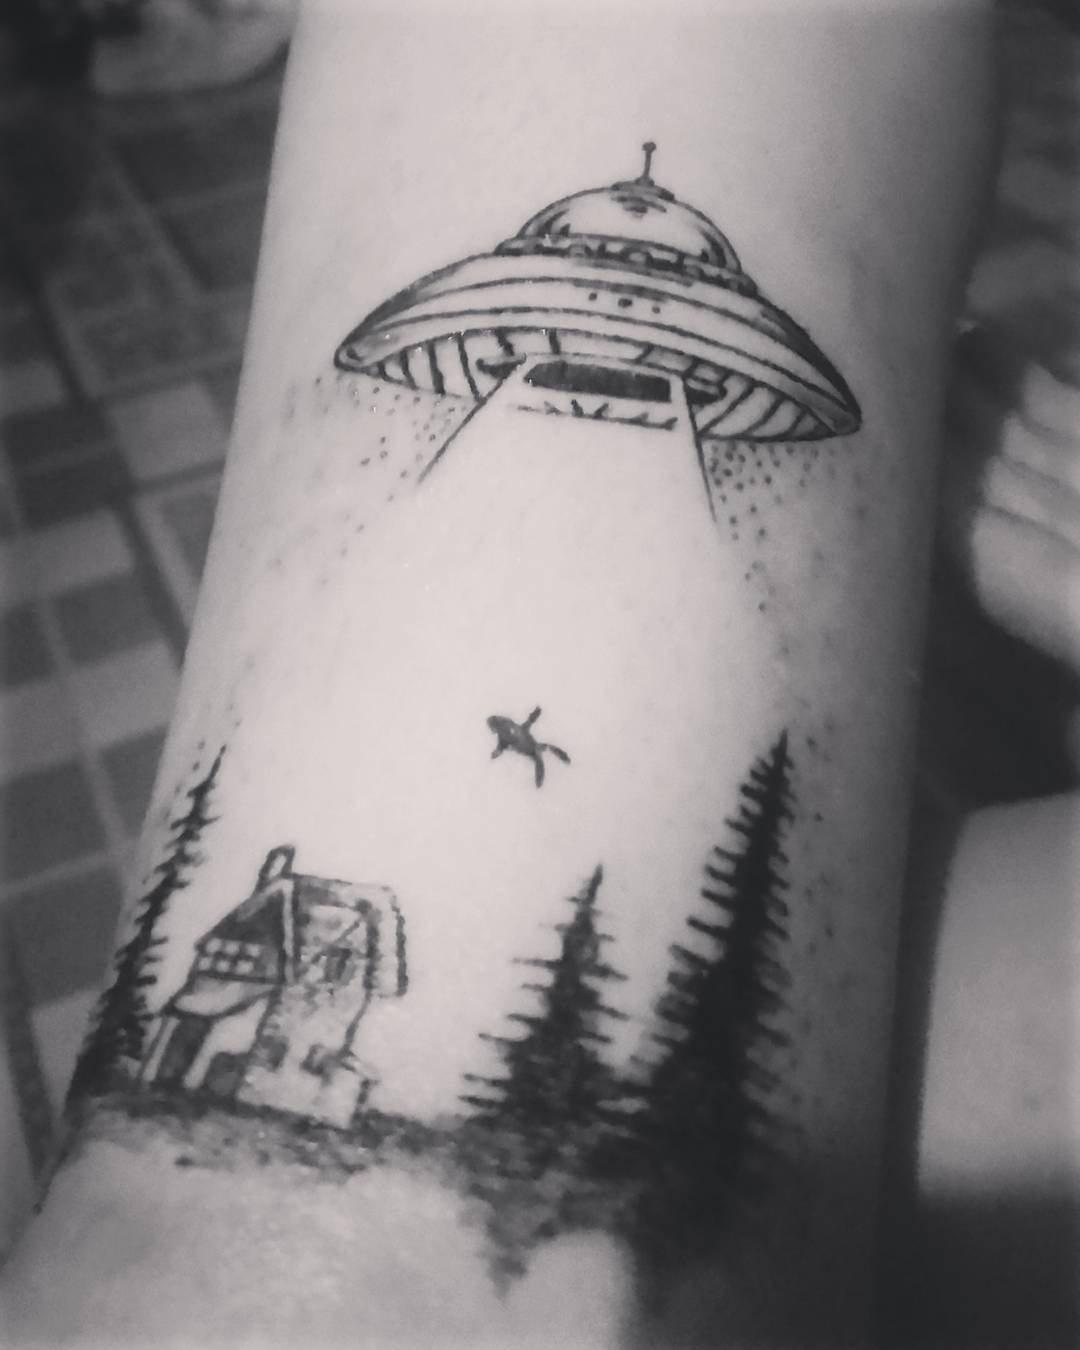 Alien Tattoos Designs Ideas And Meaning: Alien Tattoo Images & Designs